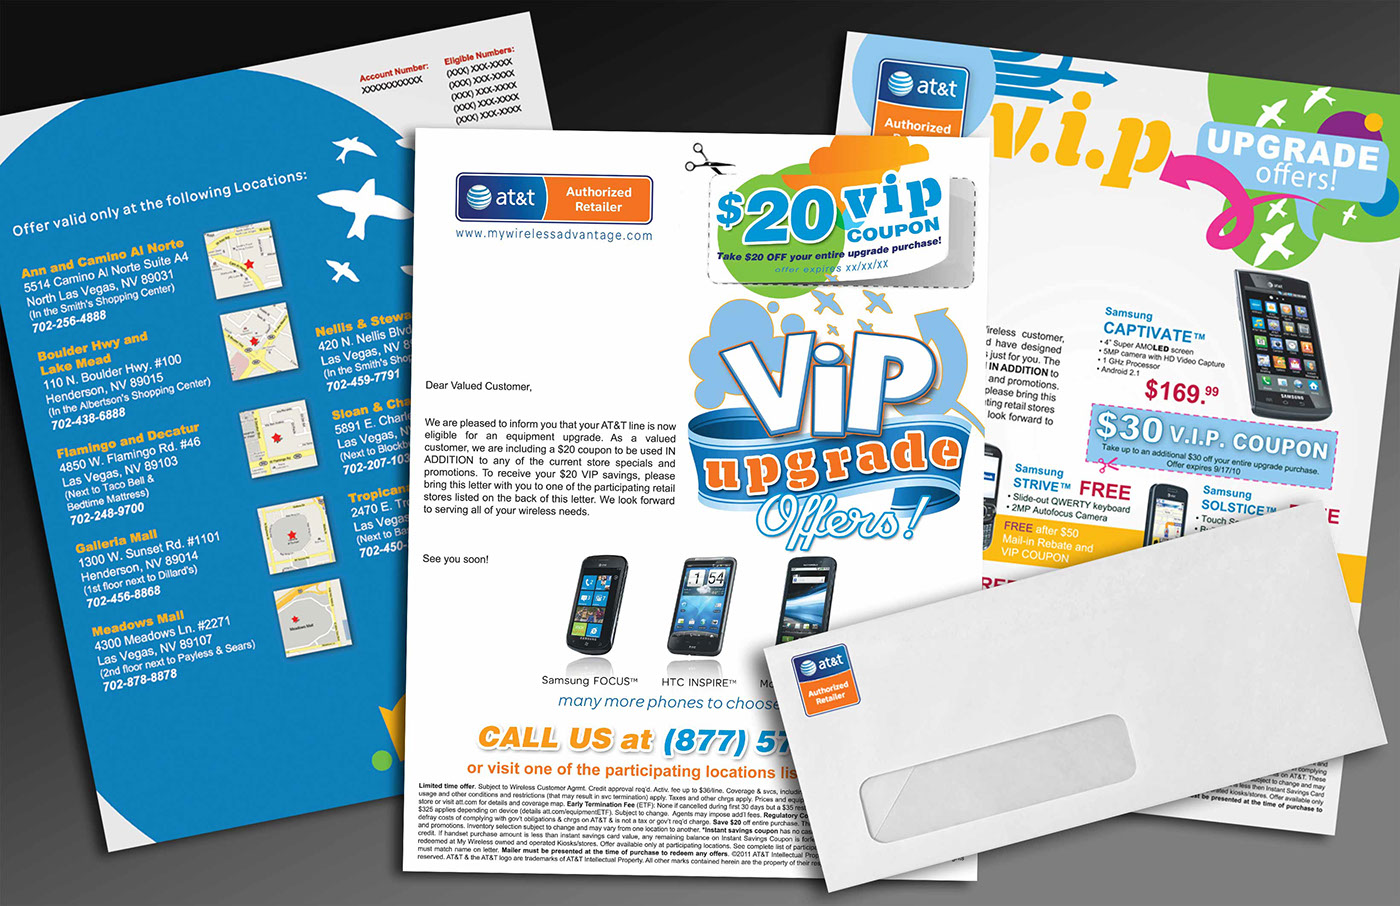 Camino Al Norte Las Vegas At T Direct Mail Mywireless Lv On Behance